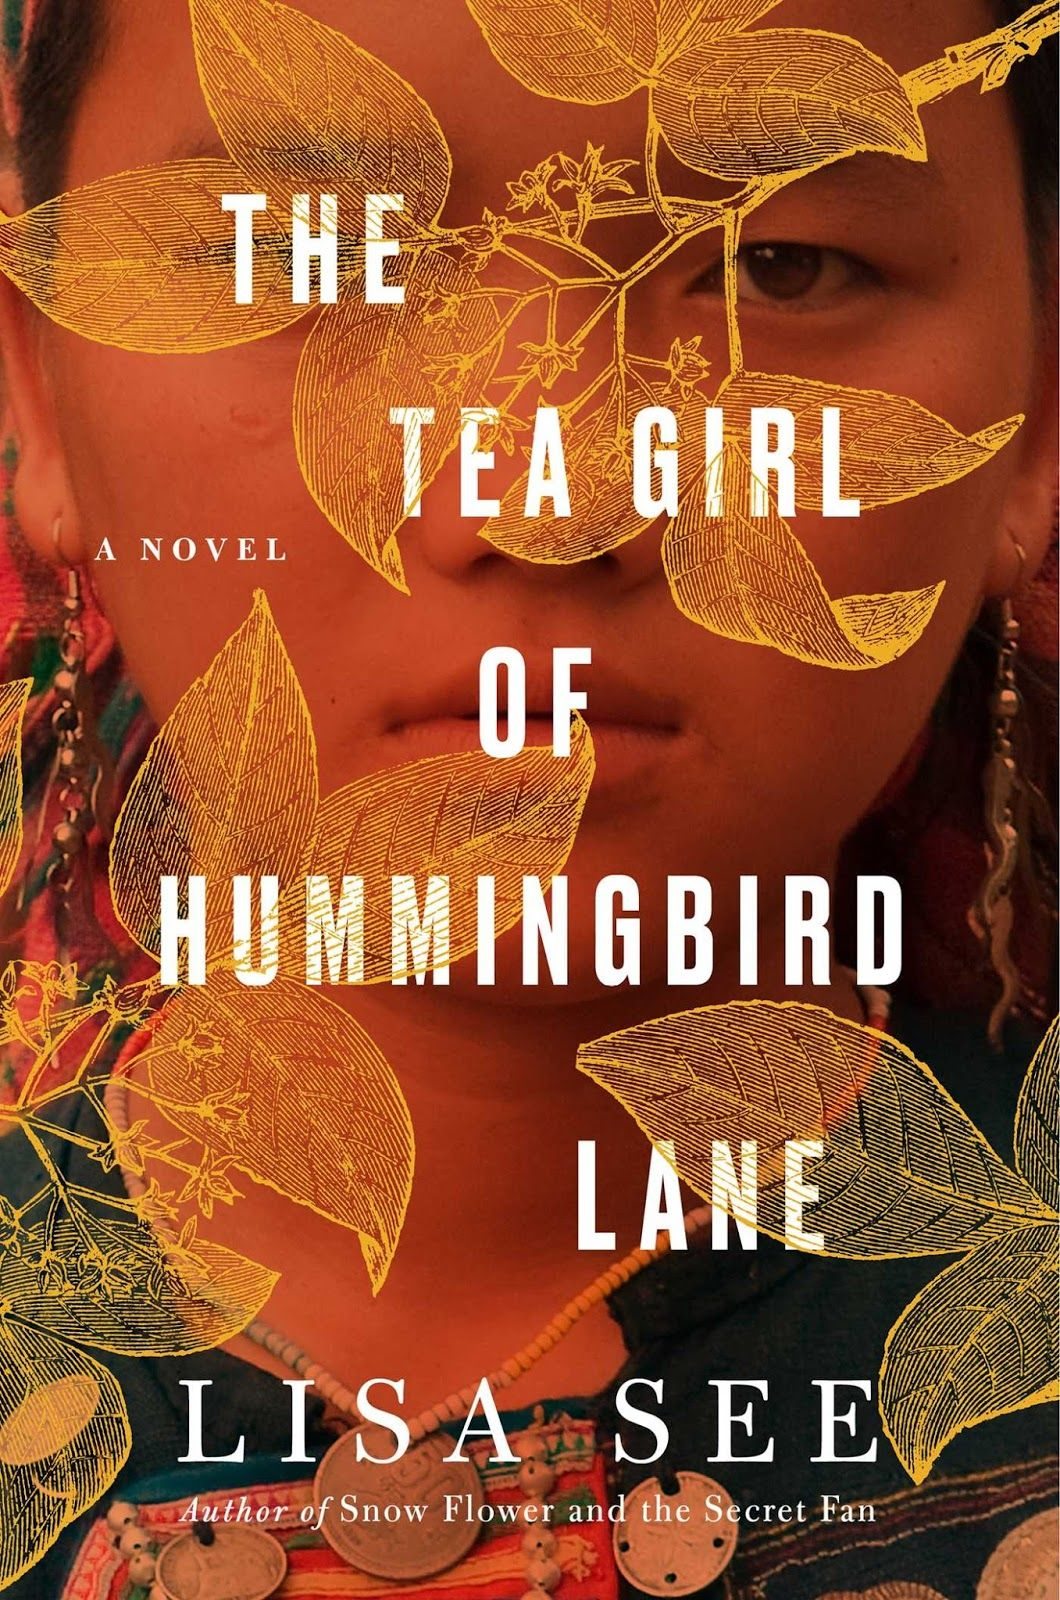 Download pdf the tea girl of hummingbird lane by lisa see i great deals on the tea girl of hummingbird lane by lisa see limited time free and discounted ebook deals for the tea girl of hummingbird lane and other fandeluxe